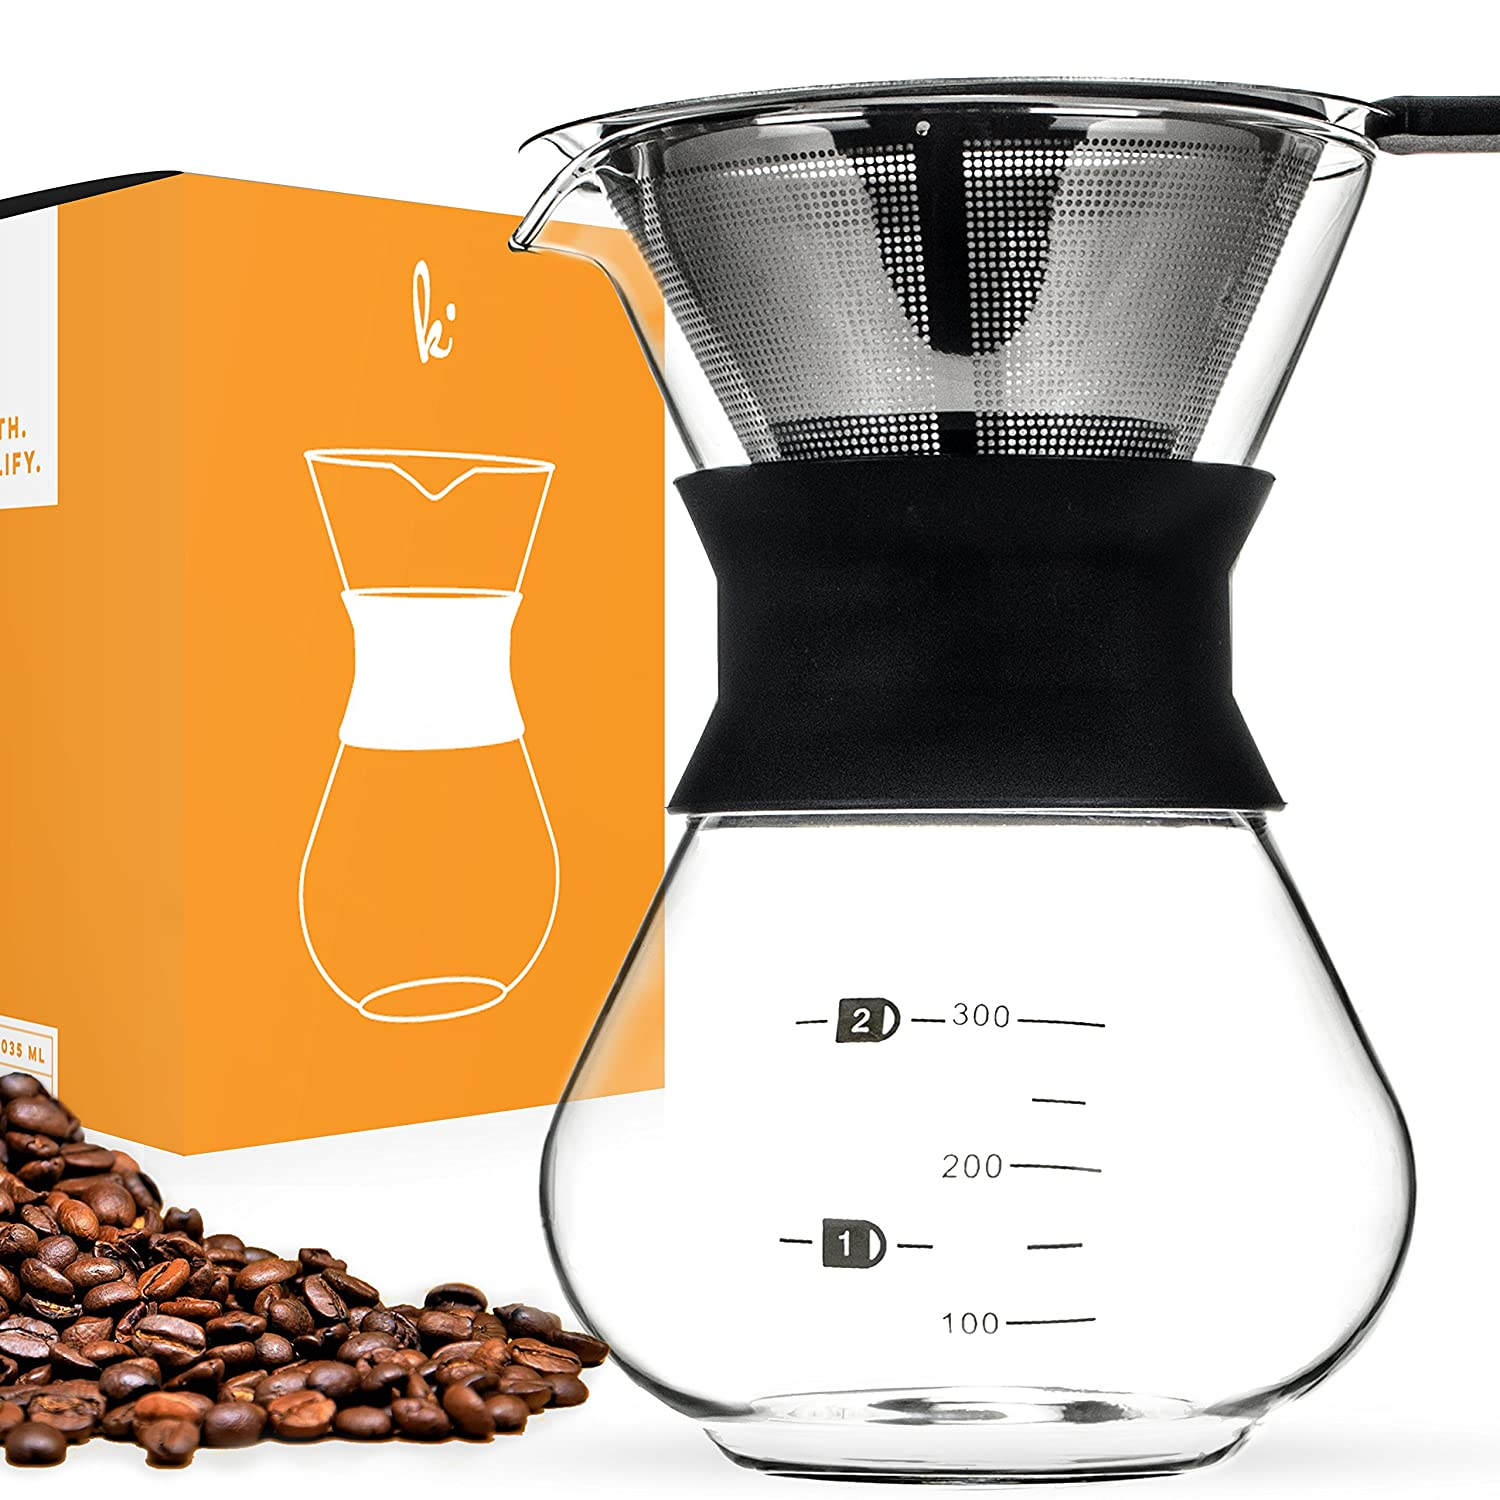 Pour Over Manual Hand Drip Coffee Maker - Glass Carafe Coffeemaker Pot with Stainless Steel Permanent Filter Kitchables SYNCHKG090484